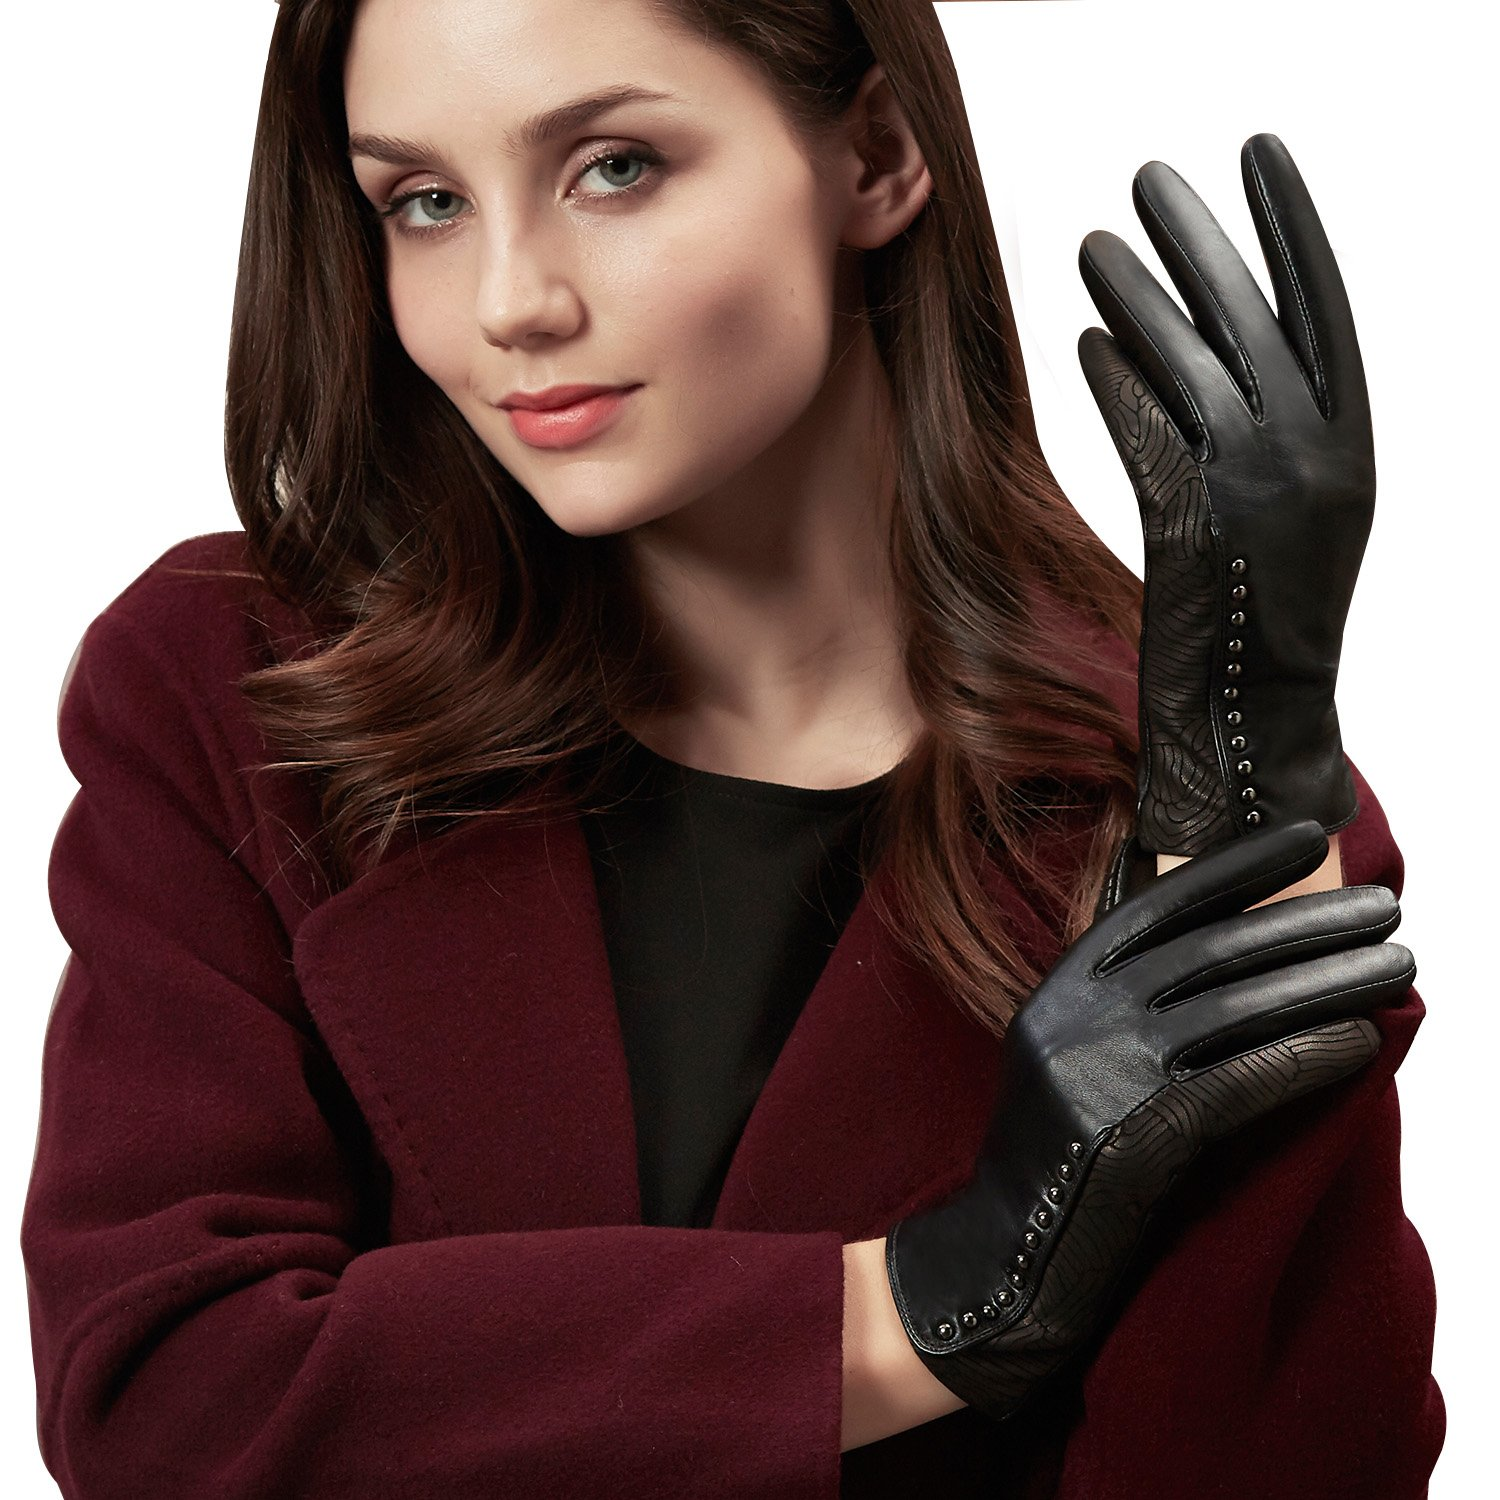 88e3b3bcf9dae GSG Womens Stylish Leather Gloves Whirlpool Patterns + Trendy Studs Black  Driving Gloves Ladies Touchscreen Gloves Warm Winter Birthday Gifts